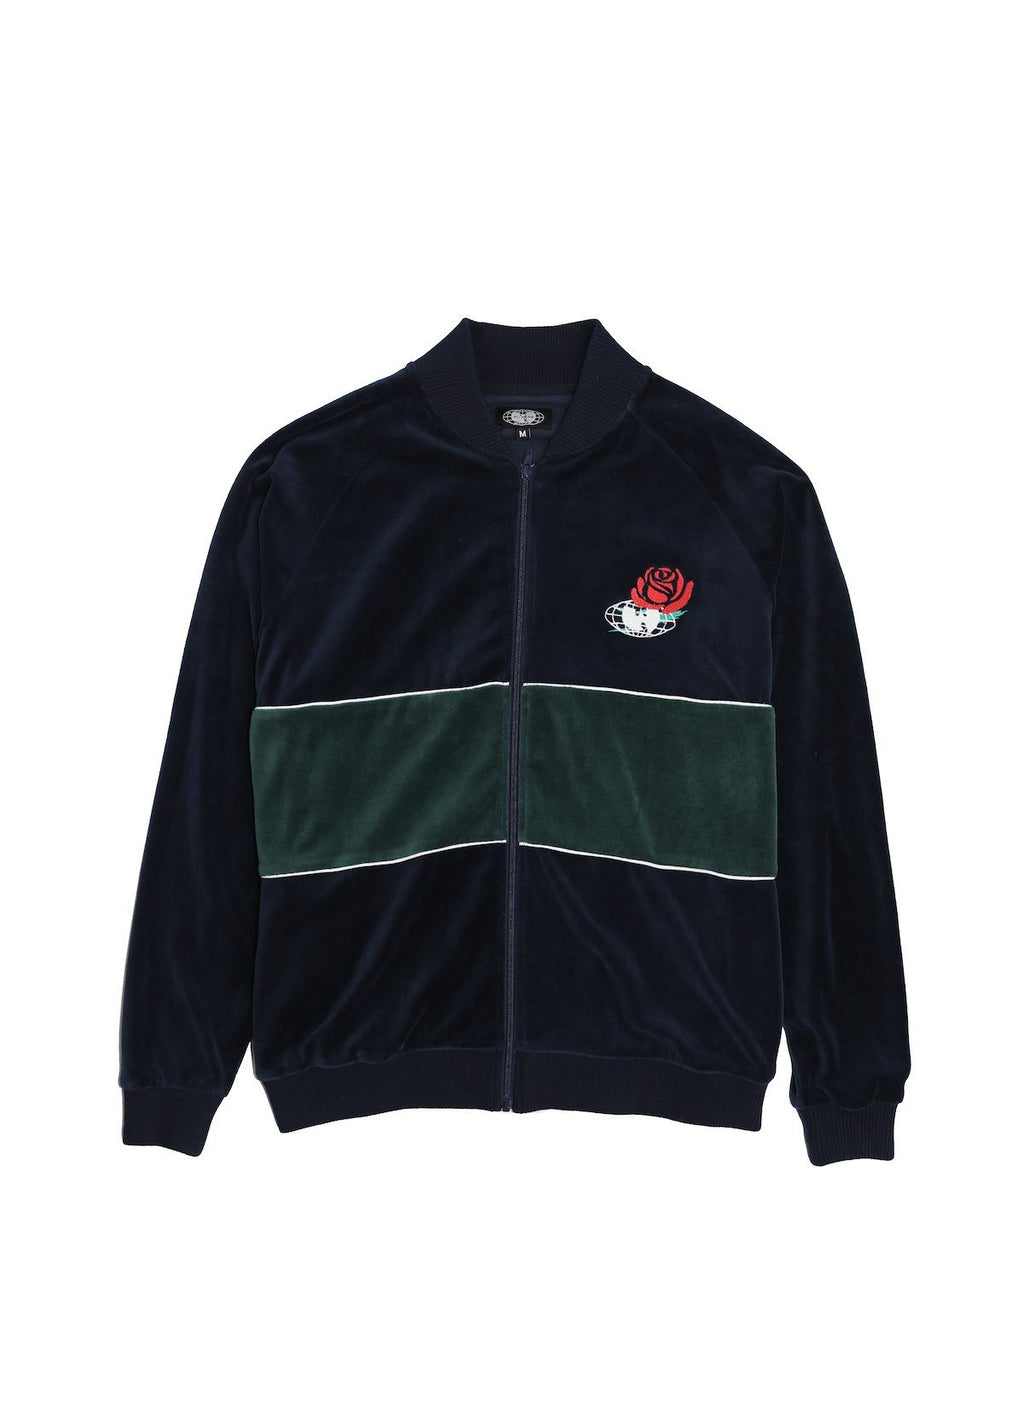 TRIUMPH TRACK JACKET - NAVY - Wu Wear